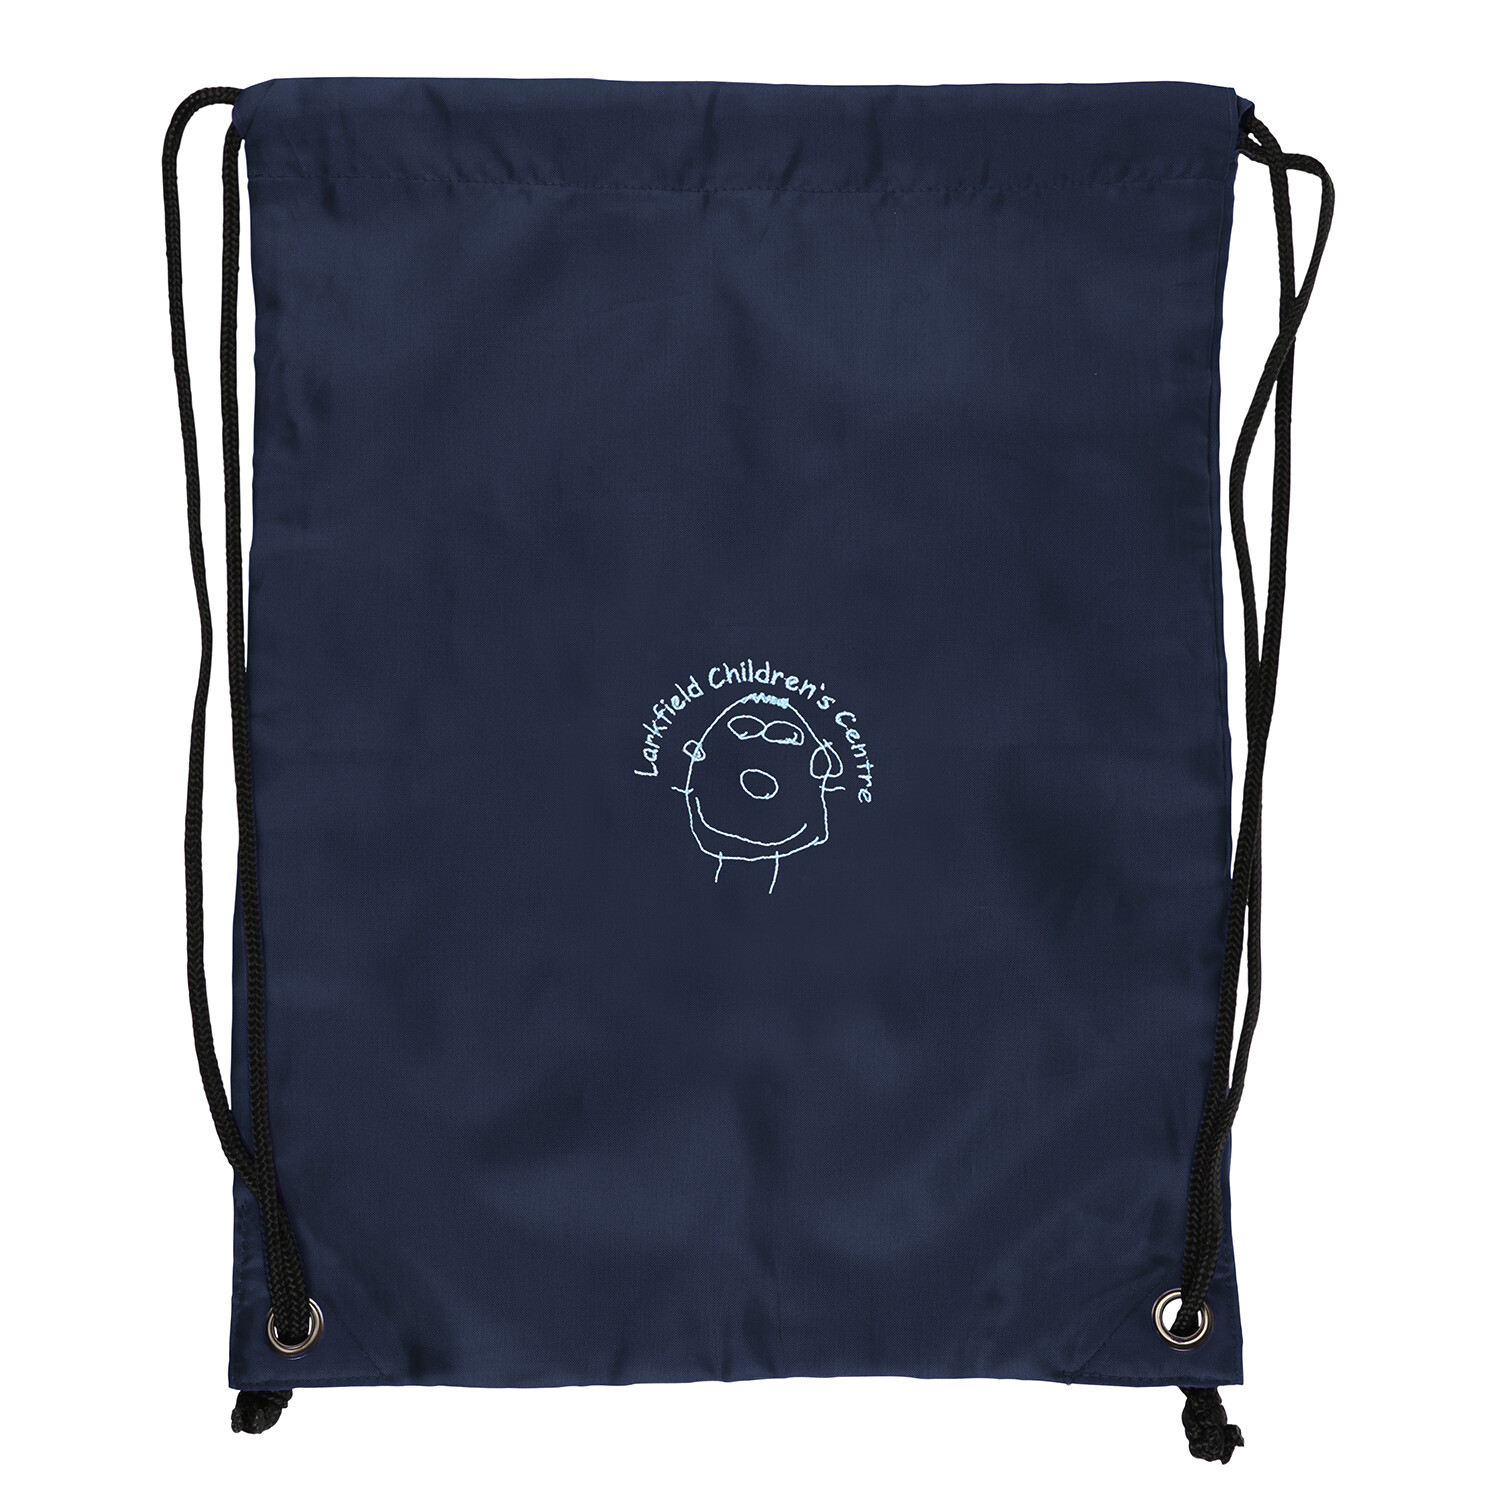 Larkfield Childrens' Centre Gym Bag